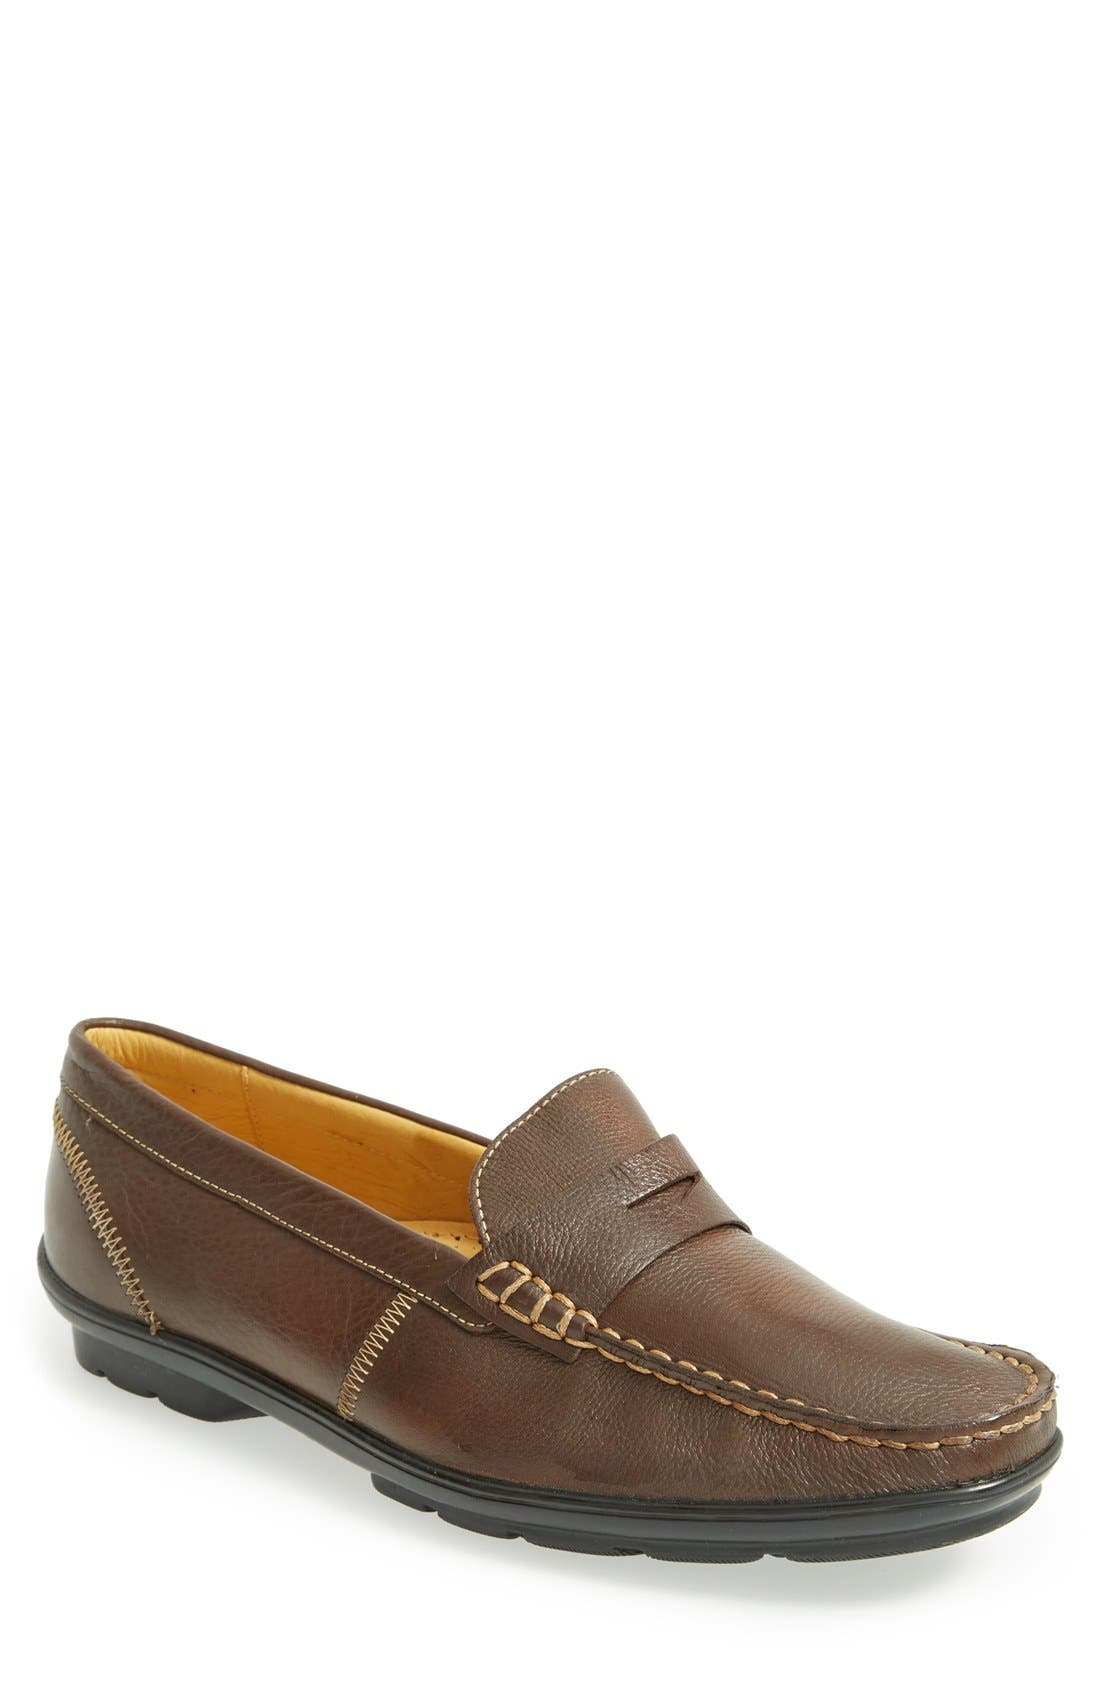 Alternate Image 1 Selected - Sandro Moscoloni 'Bimini' Penny Loafer (Men)